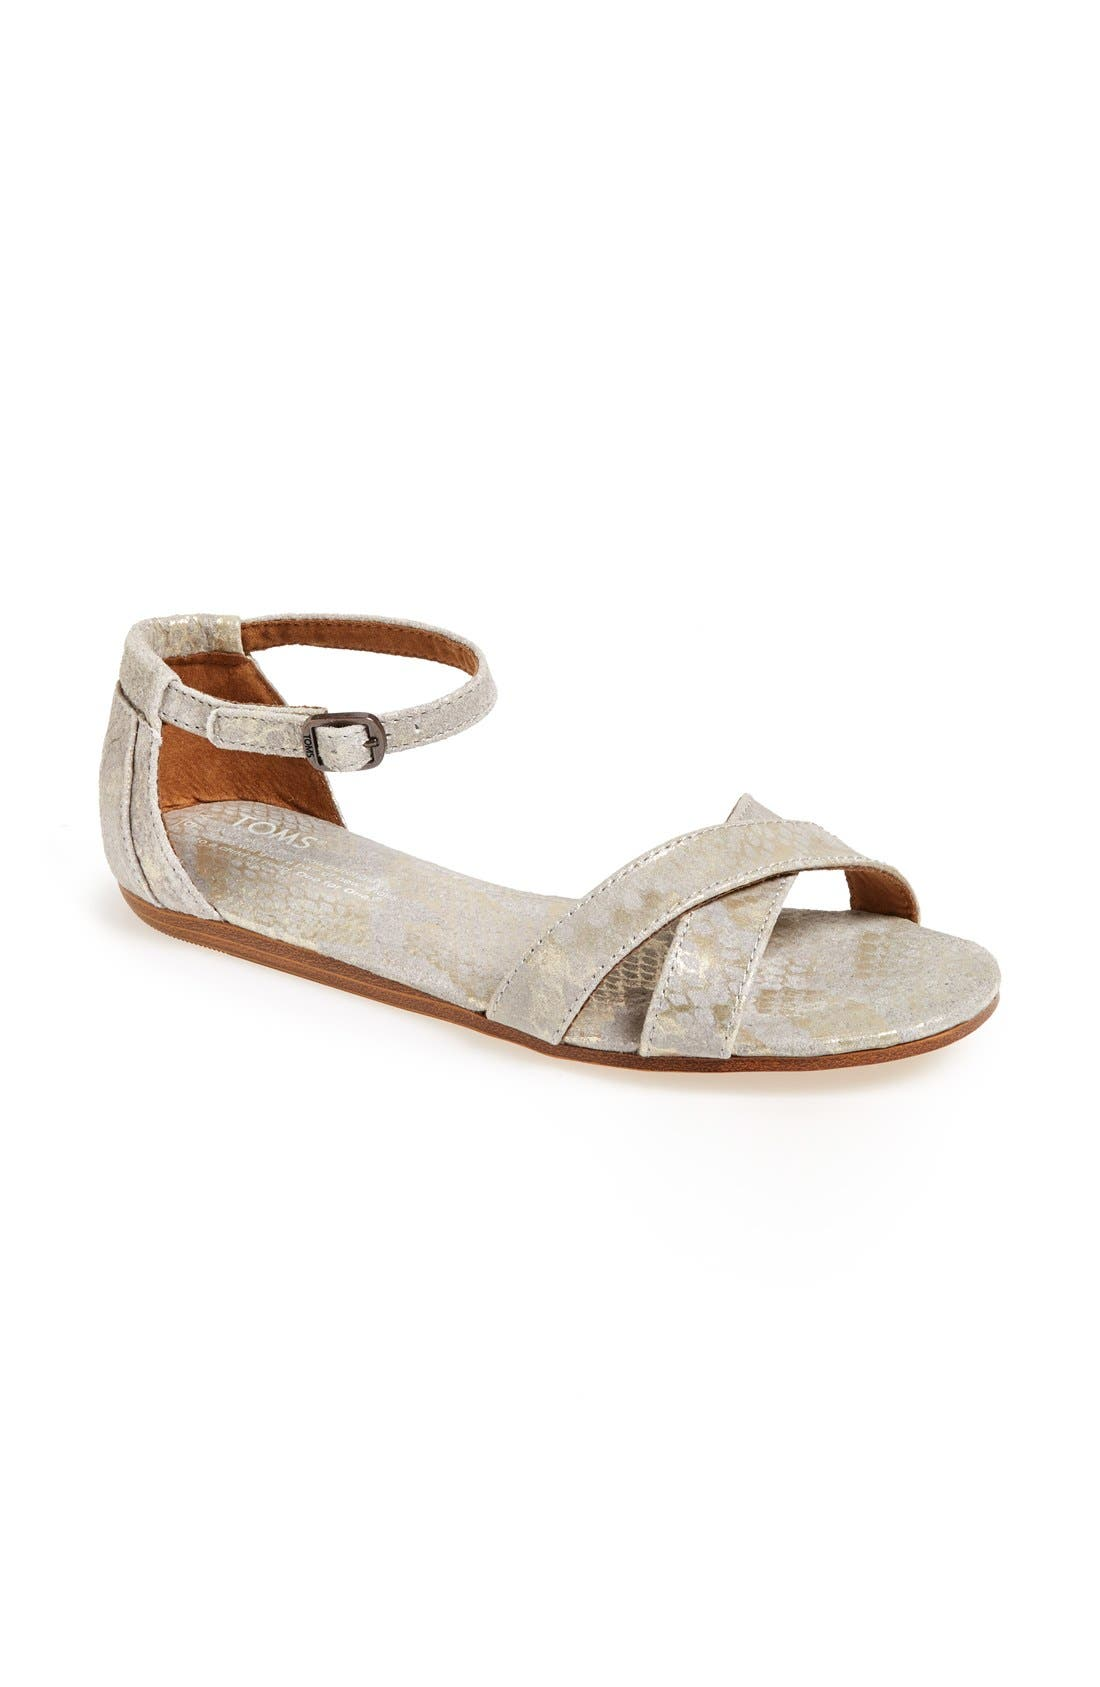 Alternate Image 1 Selected - TOMS 'Correa' Snake-Embossed Suede Sandal (Women)